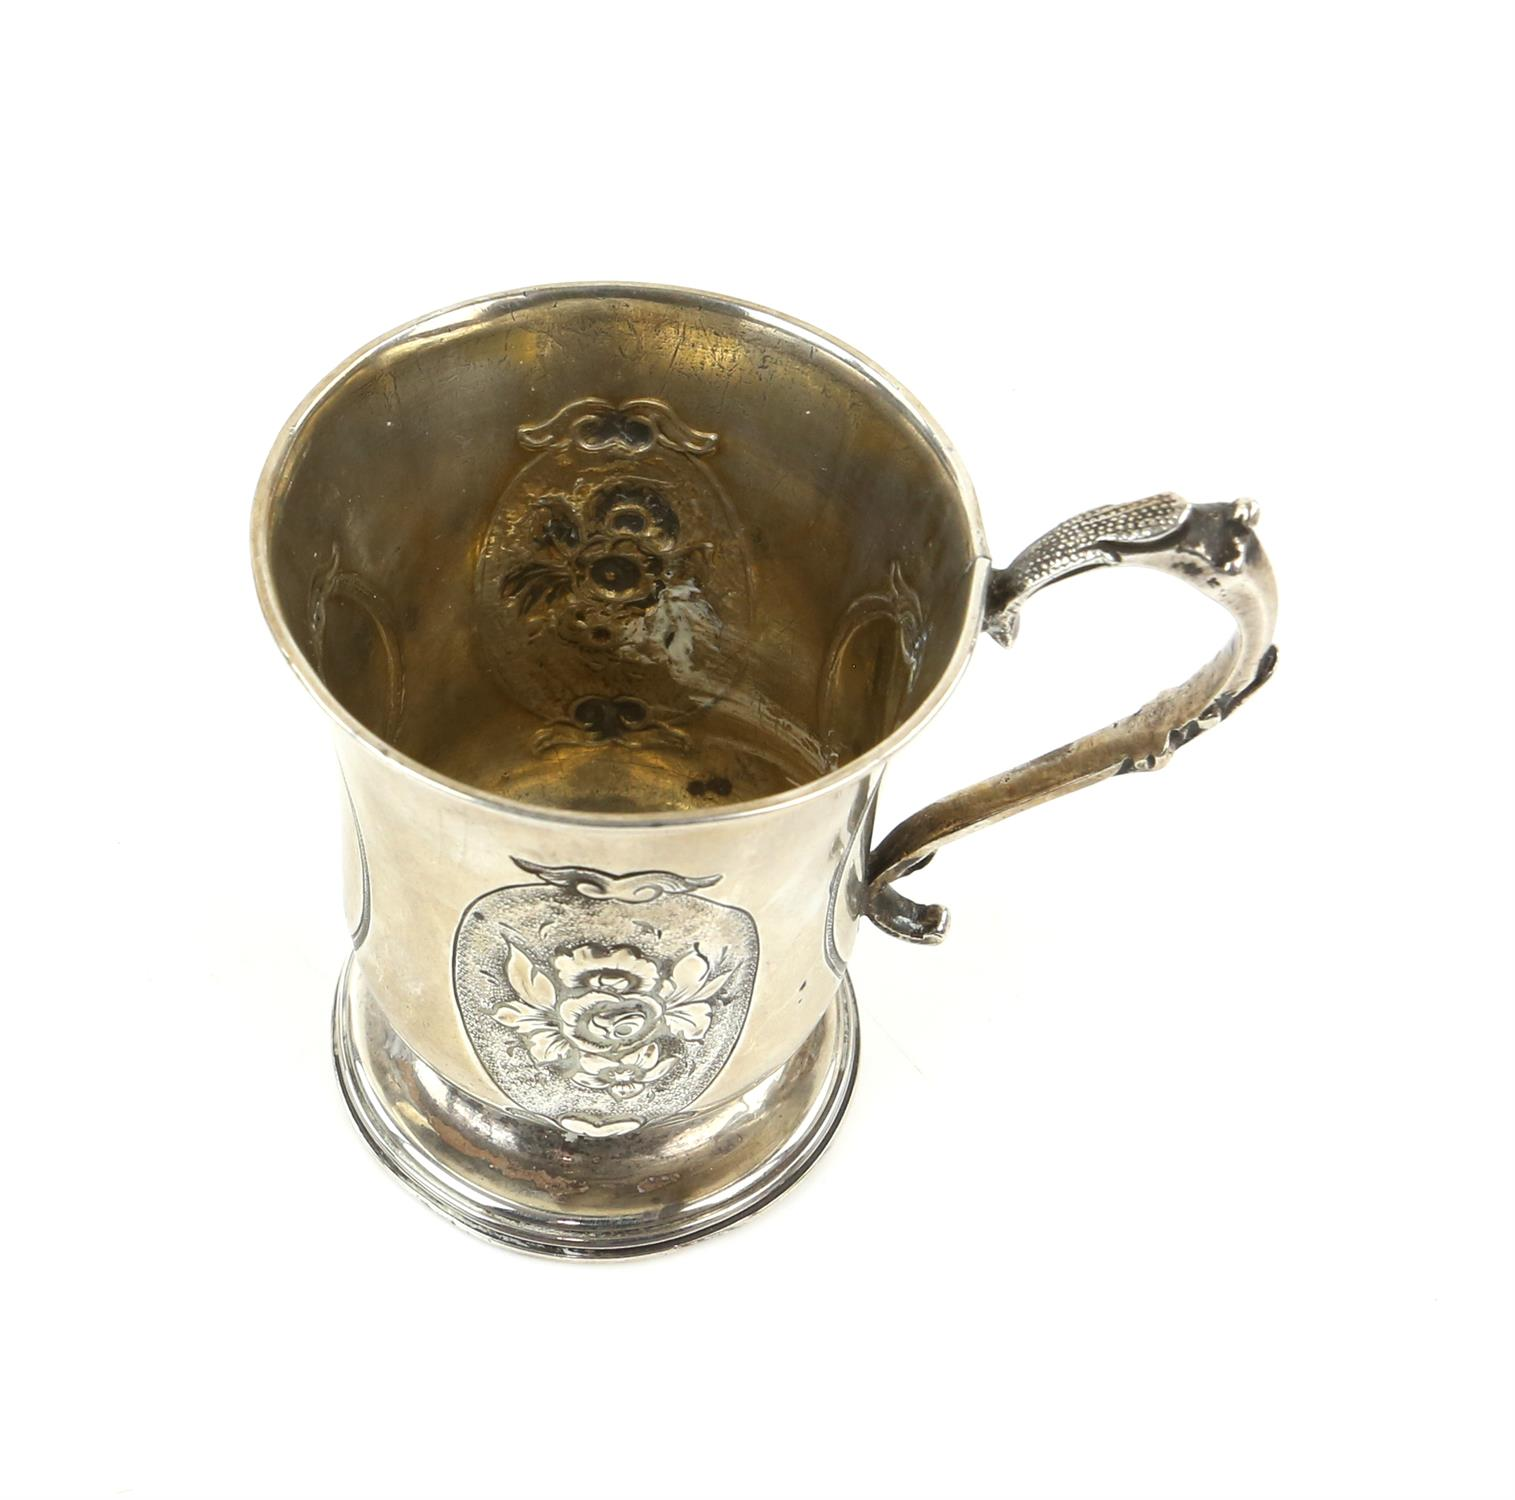 Victorian silver panelled cup/mug the two side panels embossed with a floral design and front panel - Image 4 of 5